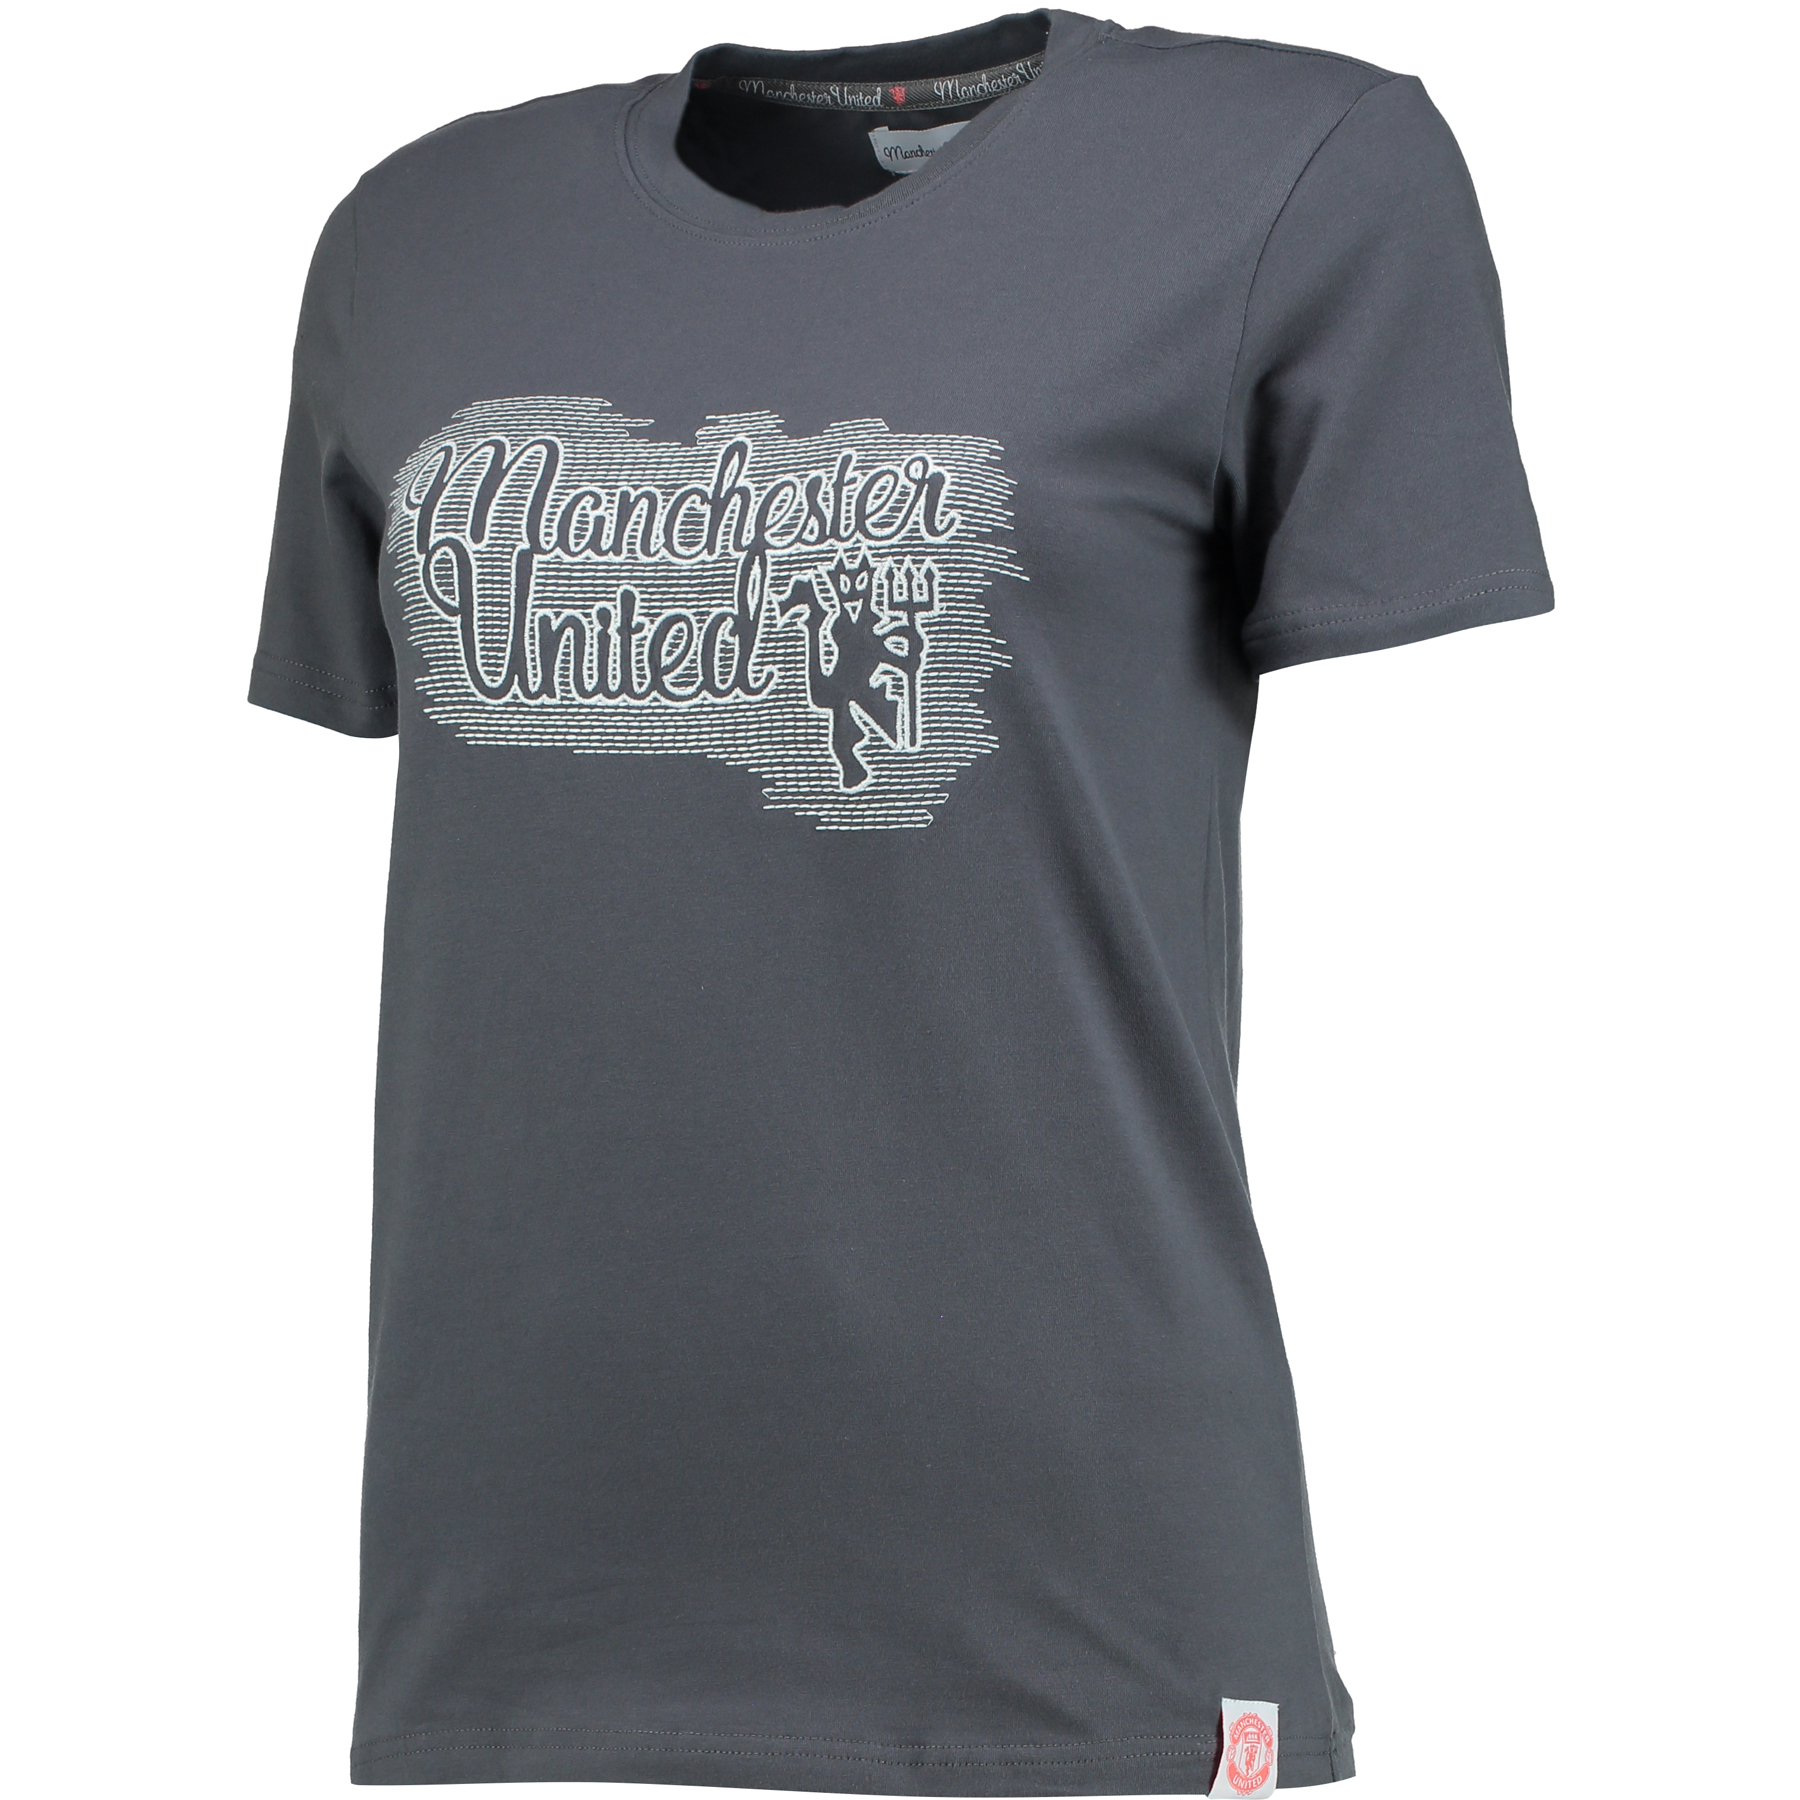 Manchester United Embroidered T-Shirt - Grey Heather - Womens